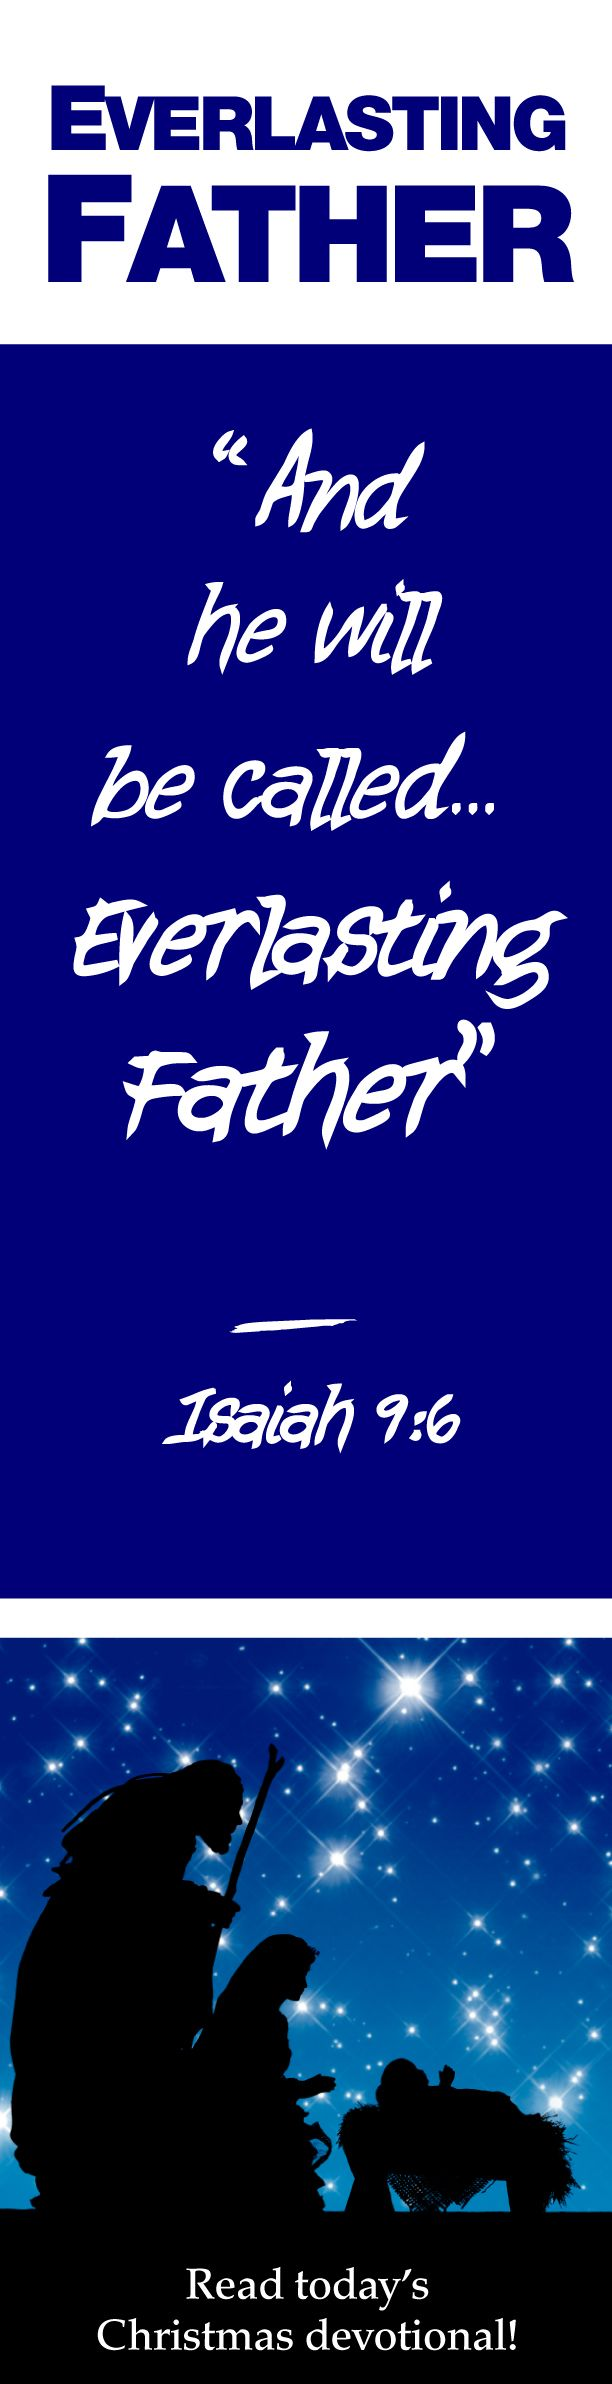 """Everlasting Father"" - There's still time to catch up and read the 25 Christmas devotionals!"